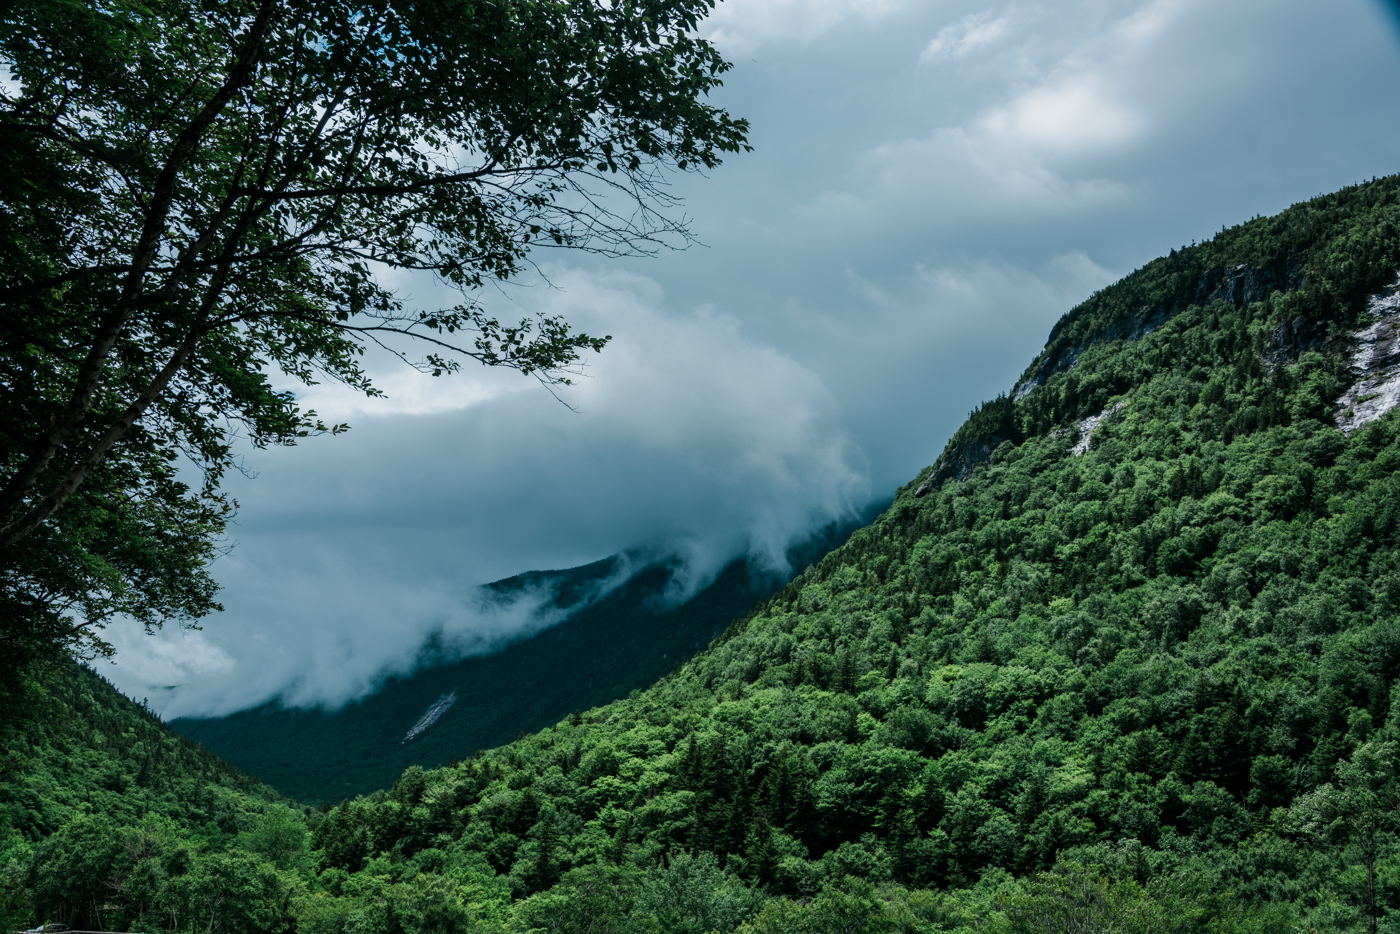 clouds hang low over the white mountains on a rainy day in new hampshire, photographed by jamie bannon photography.